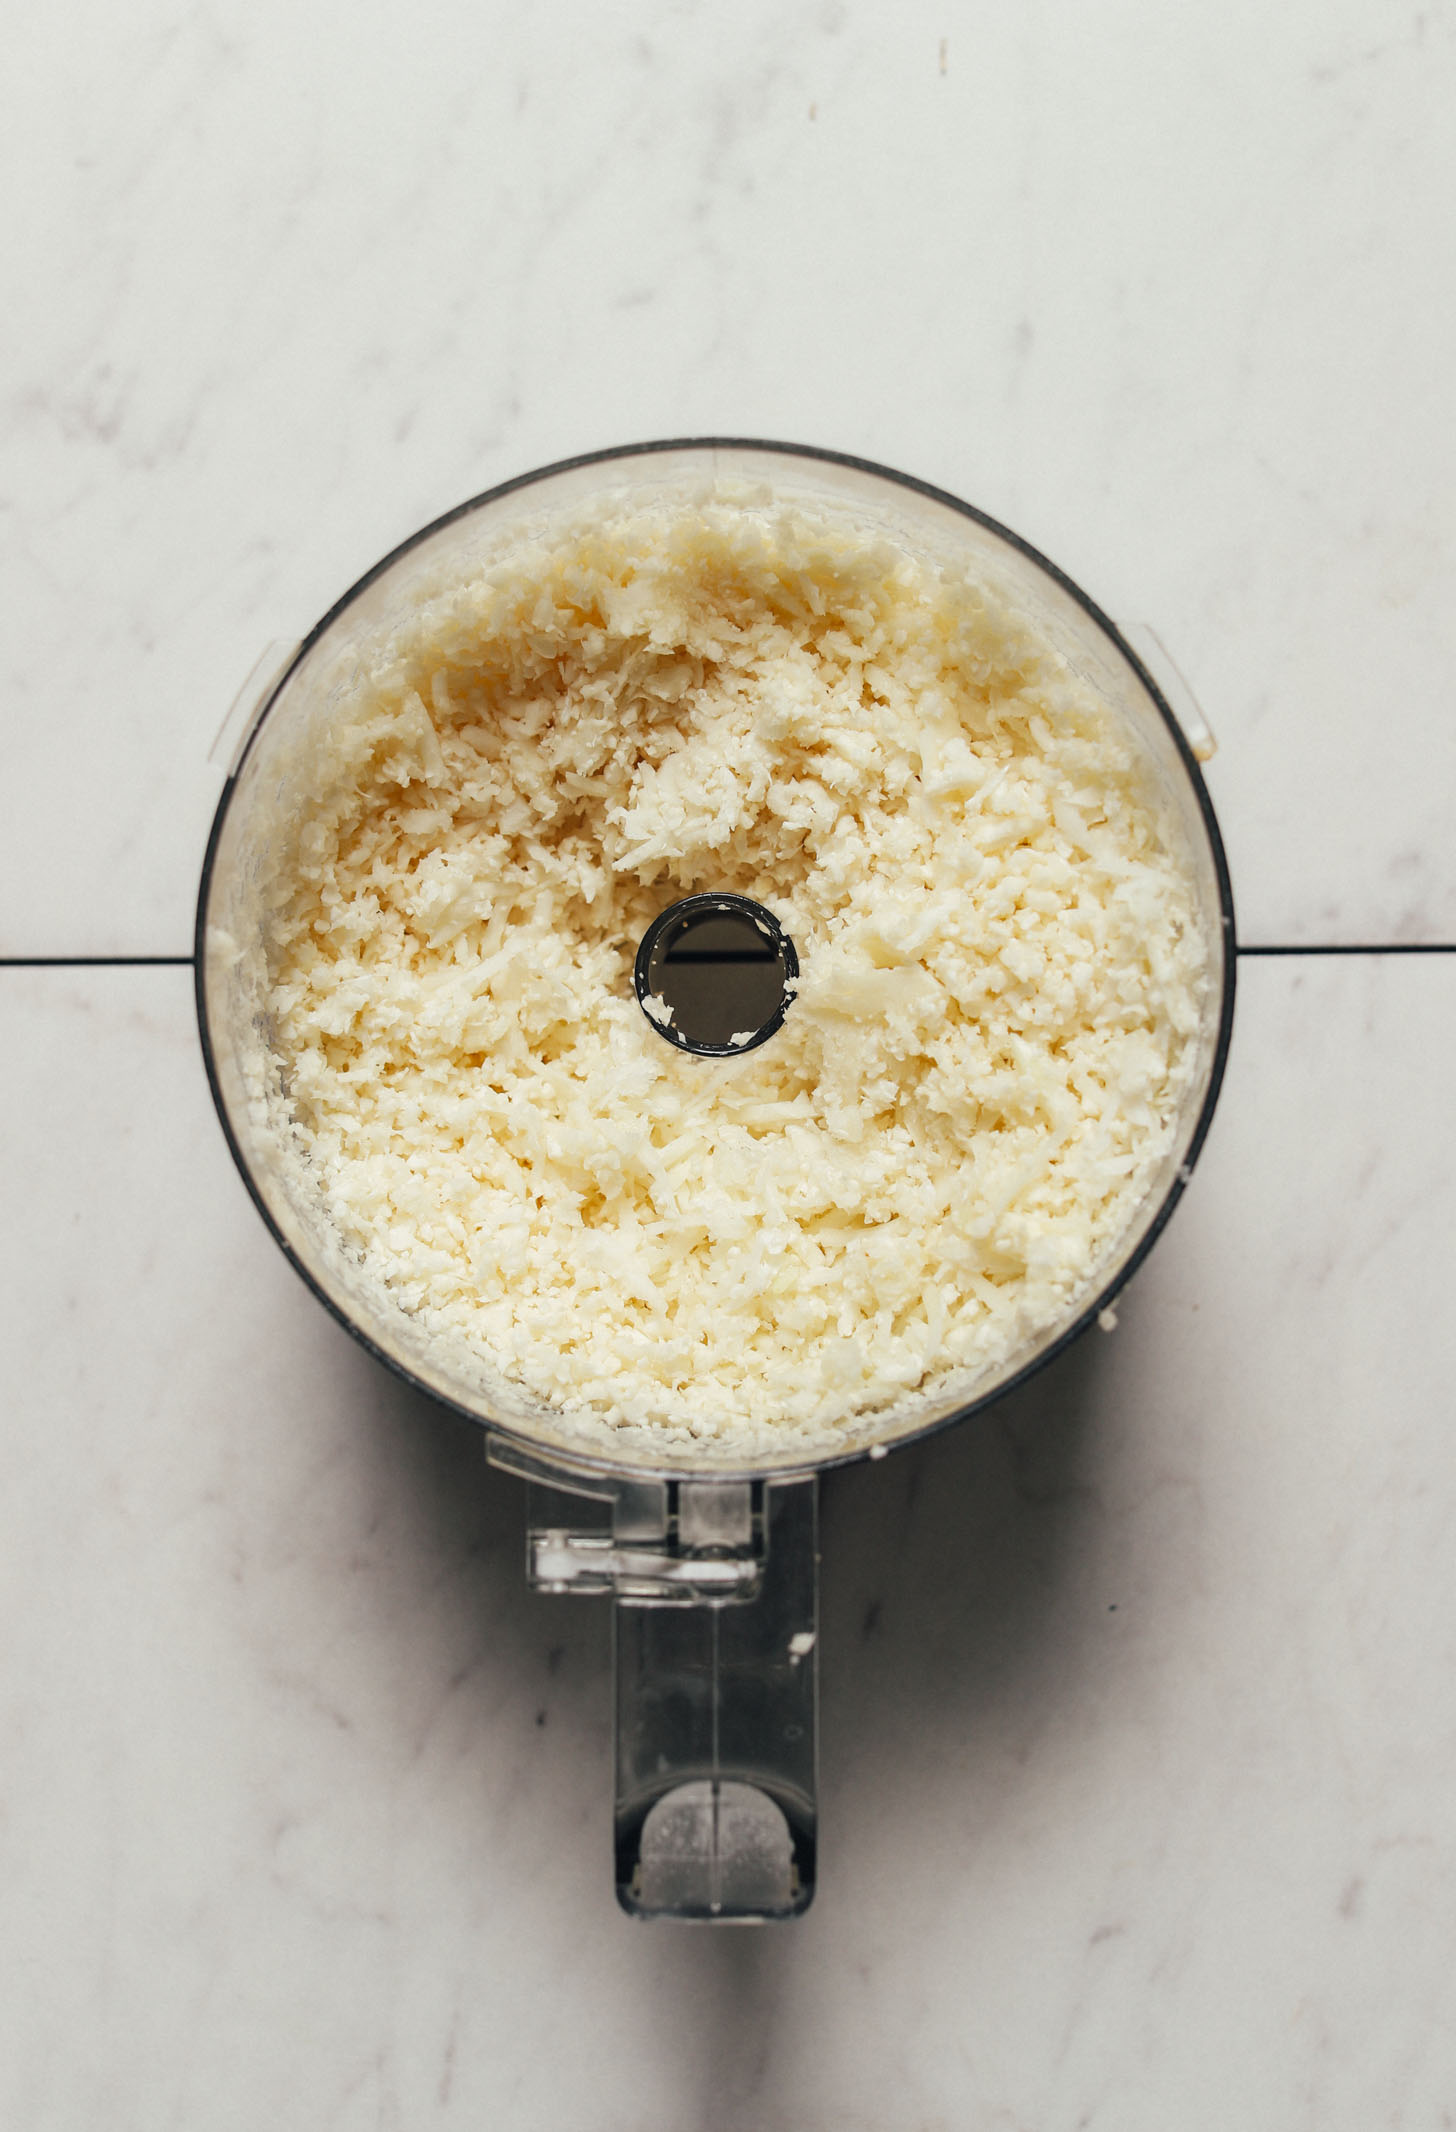 Food processor filled with freshly made homemade cauliflower rice